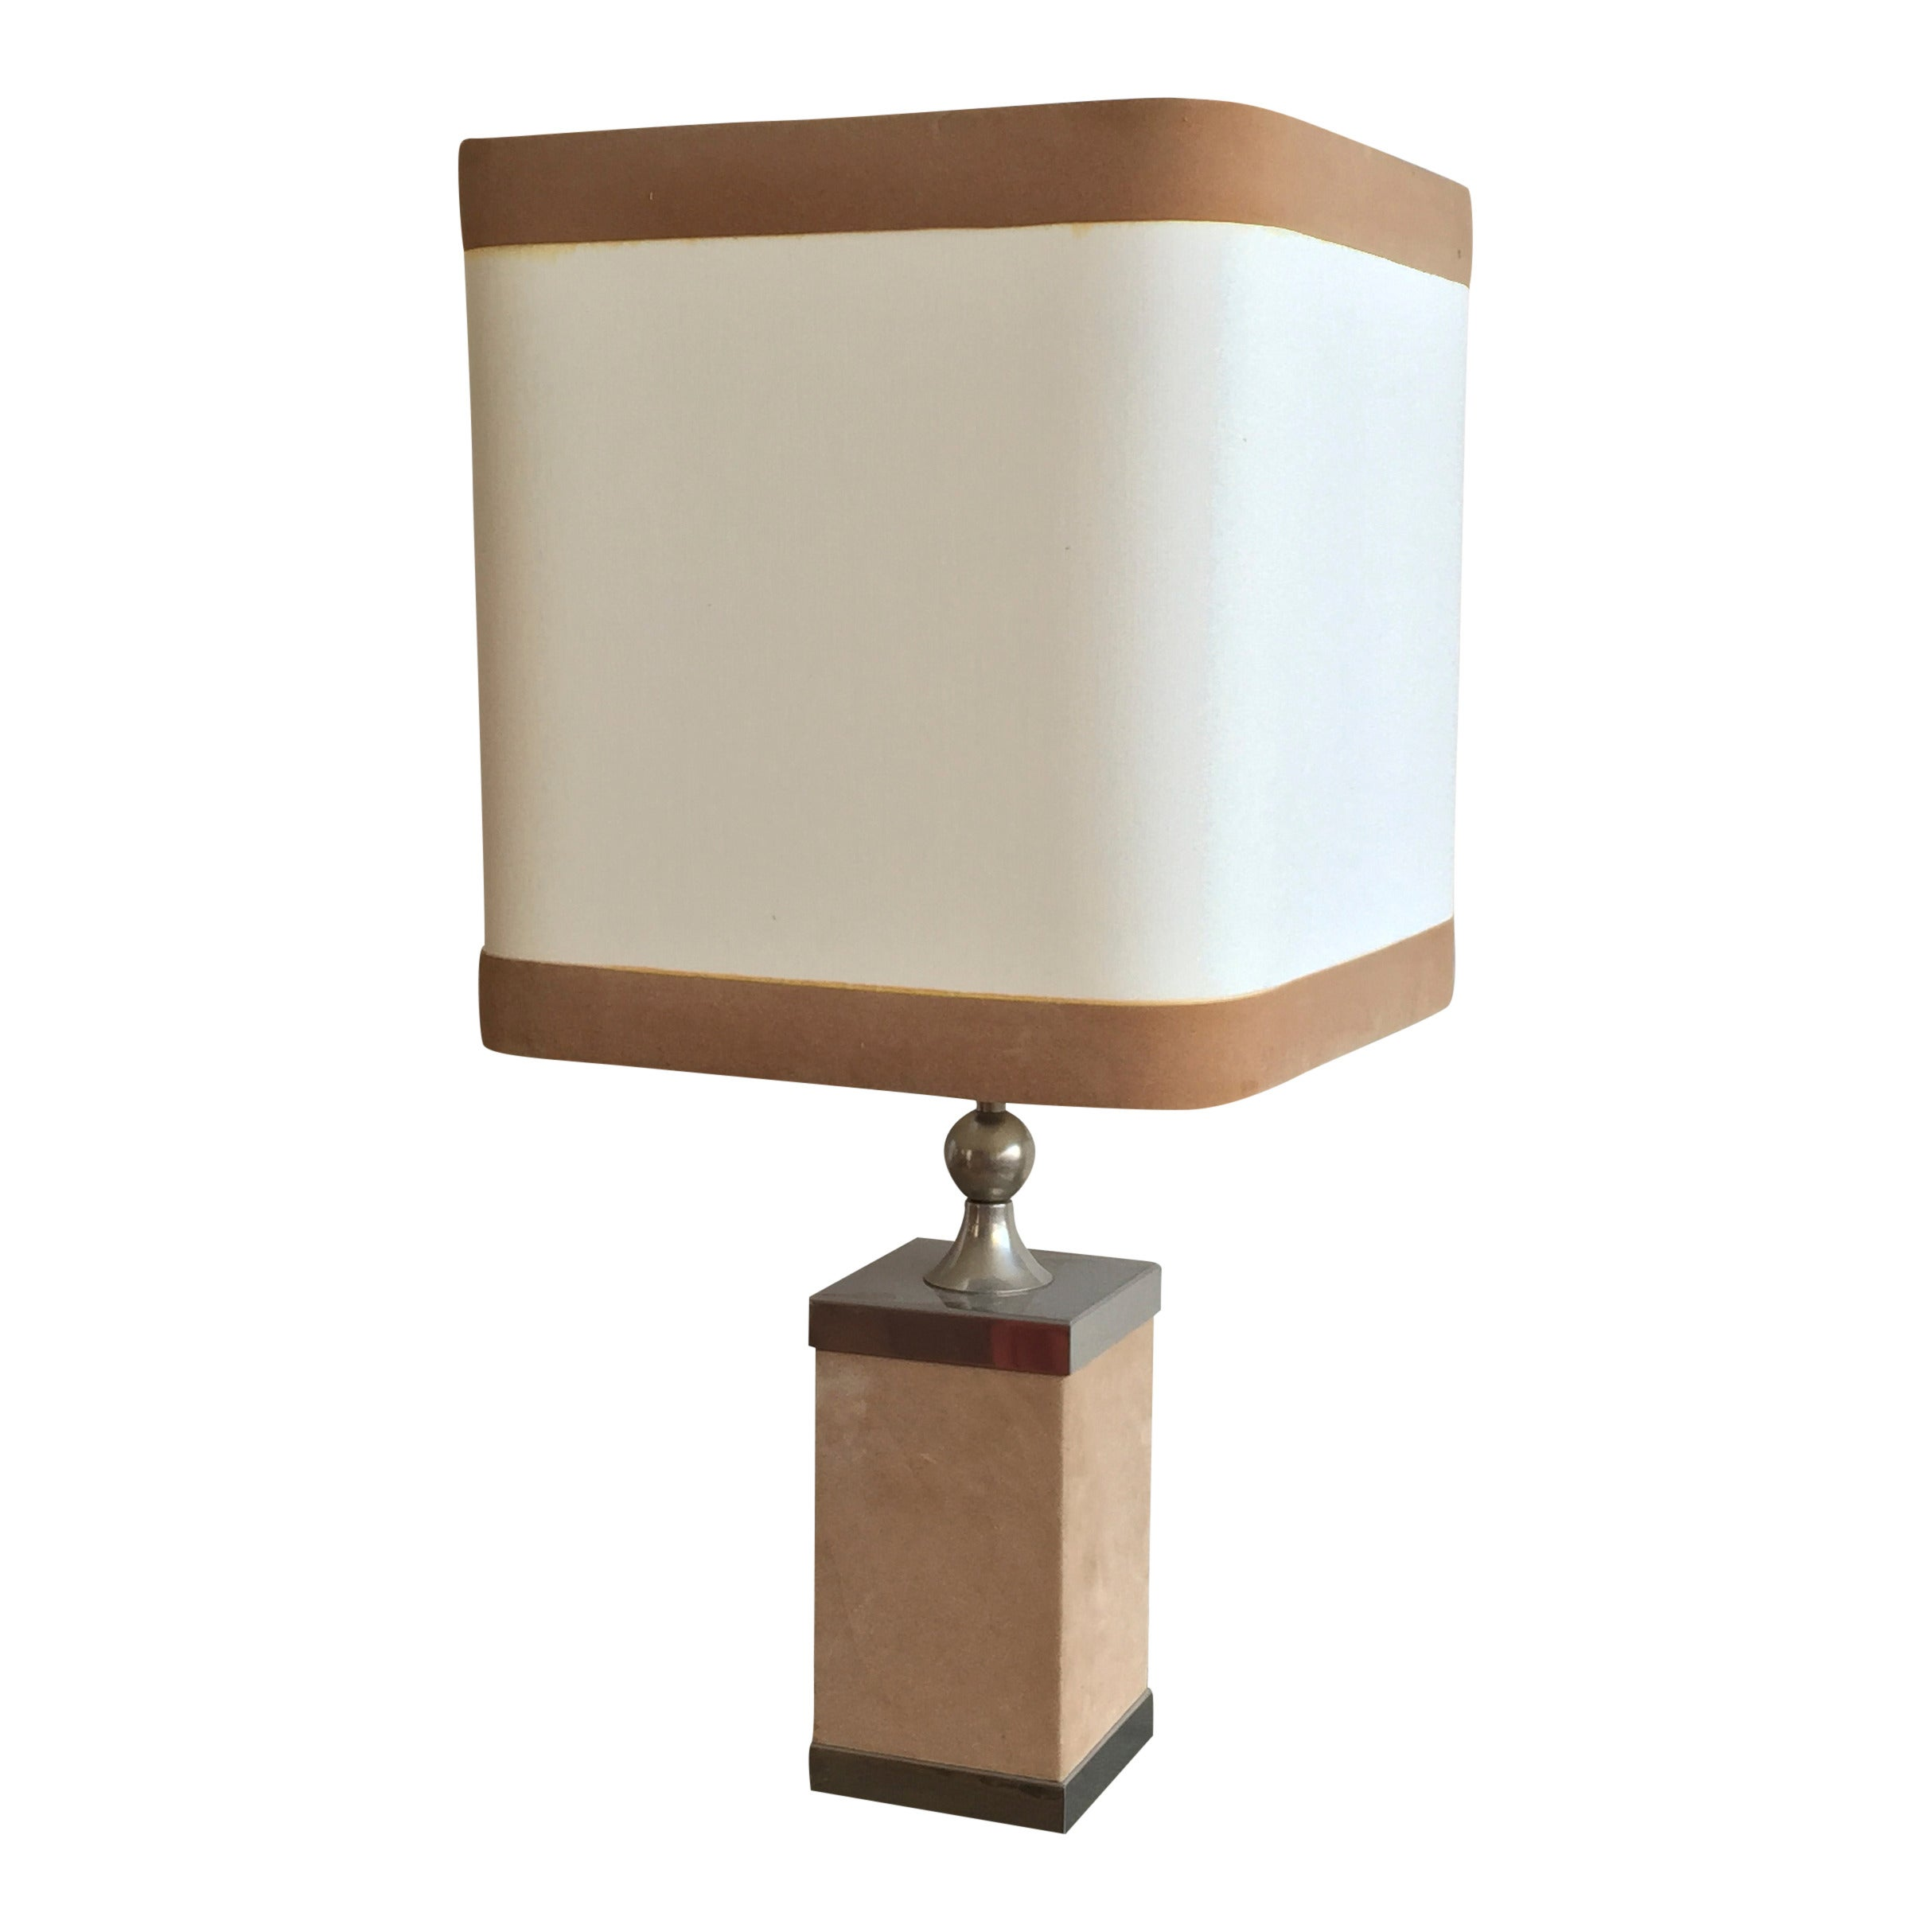 Feutrine and Nickel Plated Steel Table Lamp, France 1970s